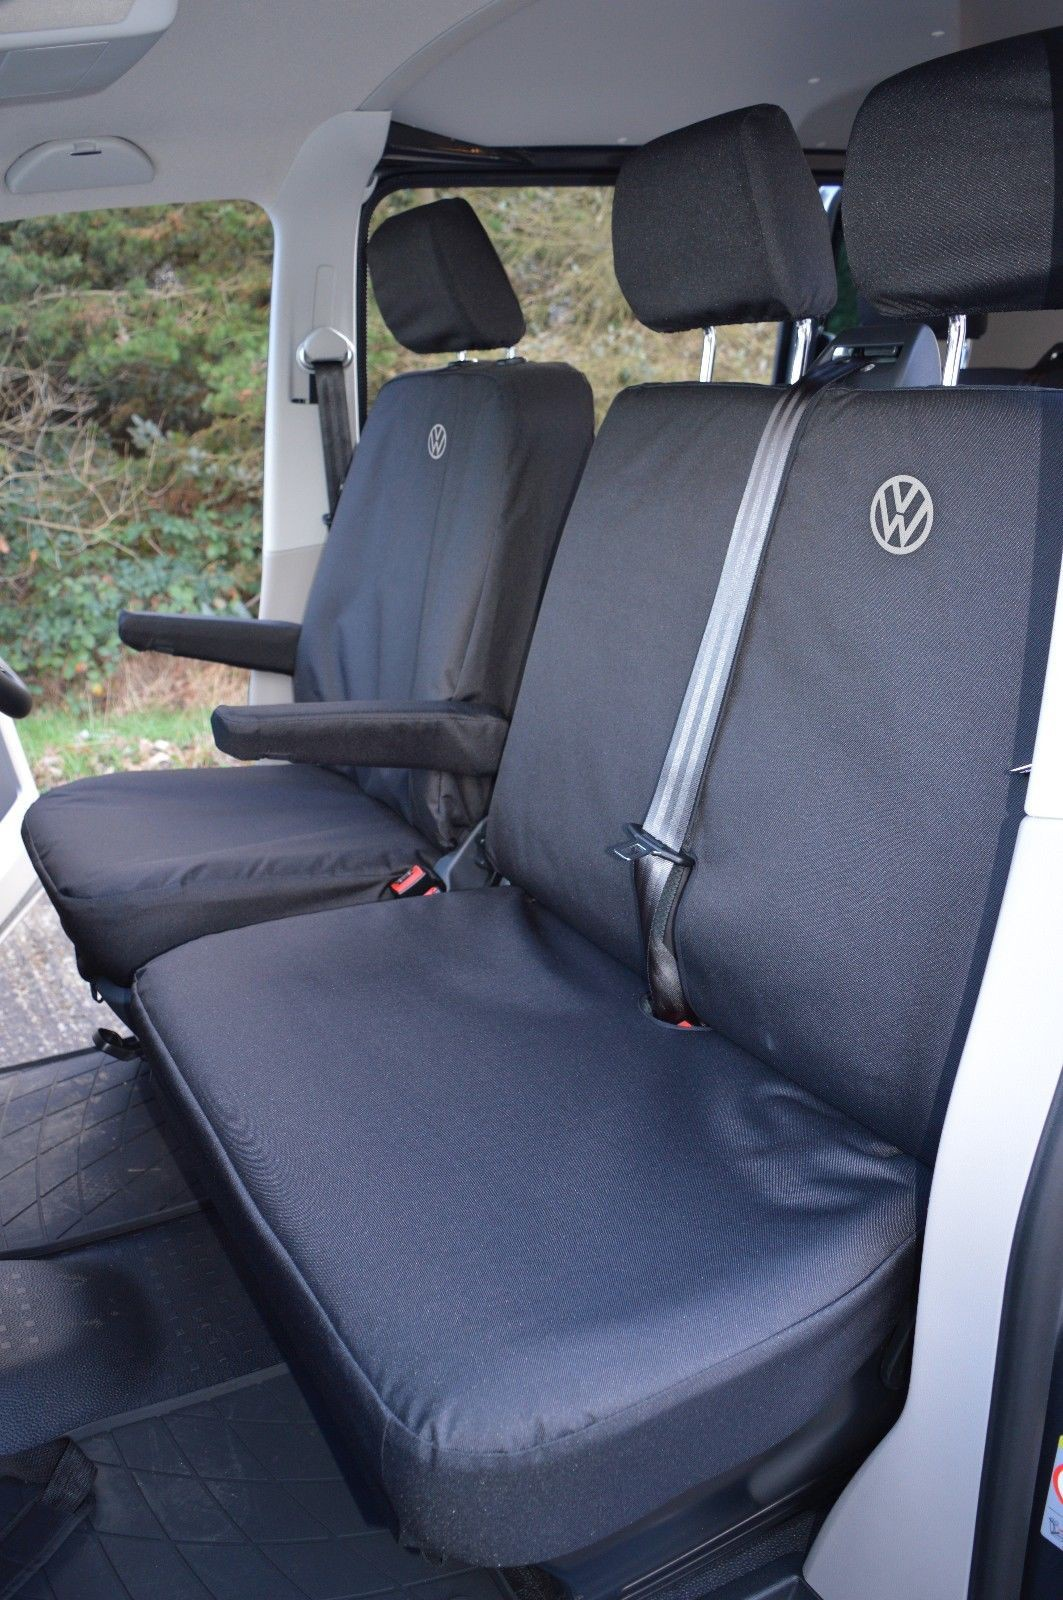 Vw T5 Seat Covers Vw Logos Heavy Duty